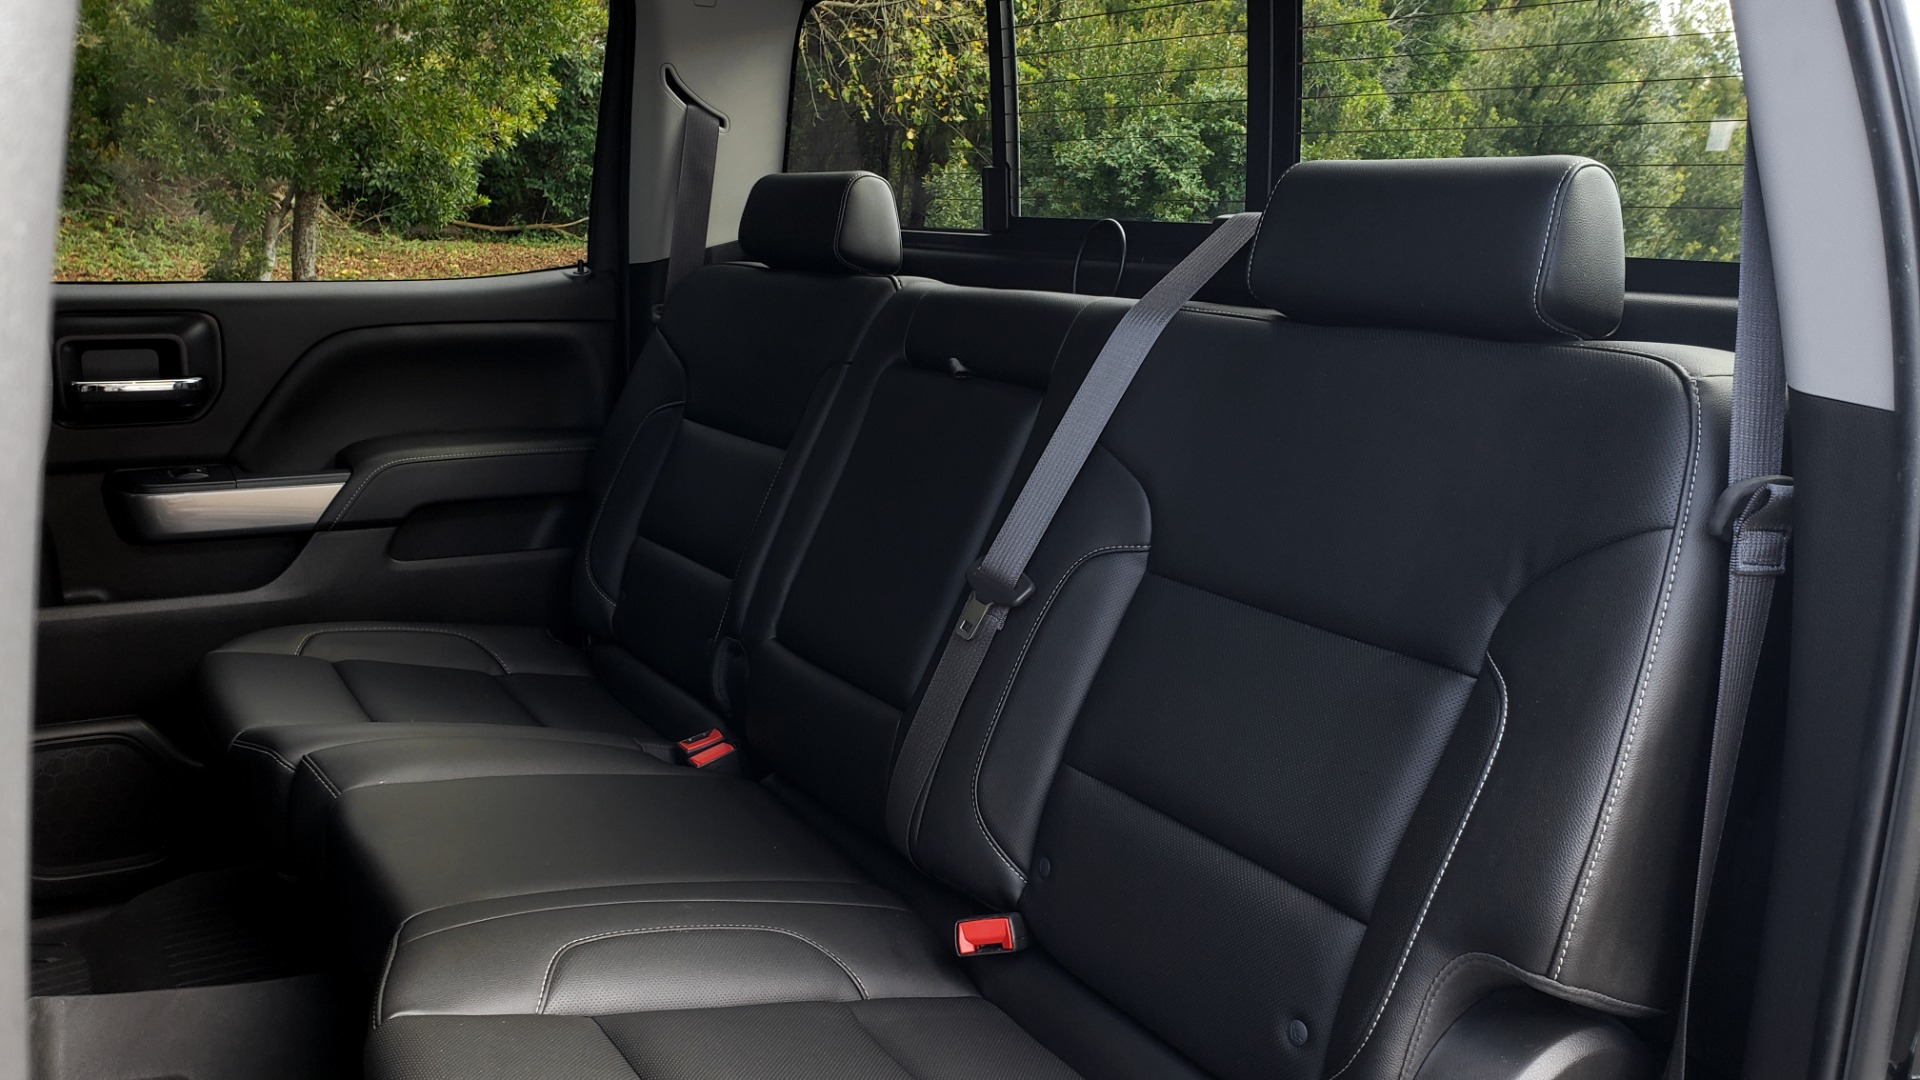 Used 2014 Chevrolet SILVERADO 1500 CREWCAB / LTZ PLUS PKG / 4WD / 2LZ / NAV / BOSE / REARVIEW for sale Sold at Formula Imports in Charlotte NC 28227 65